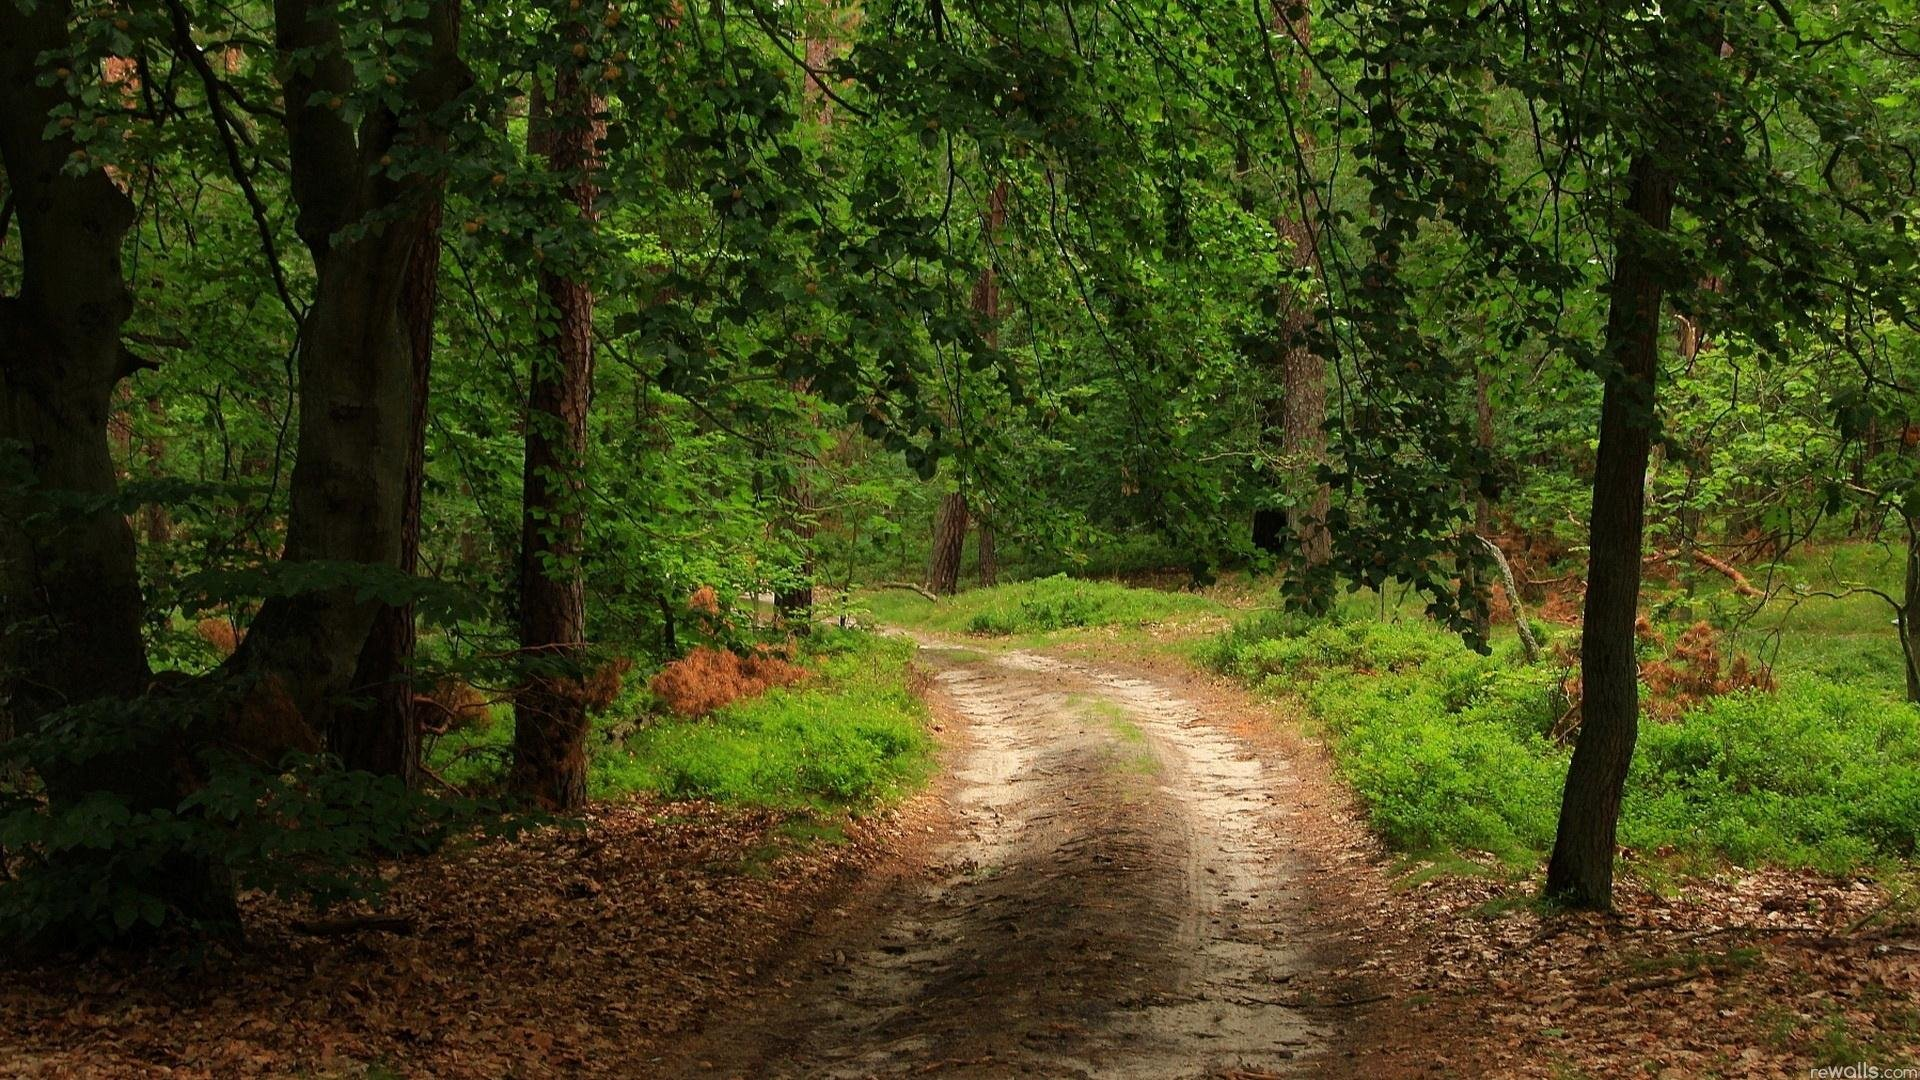 Landscape nature tree forest woods path road wallpaper  1920x1080  652054  WallpaperUP